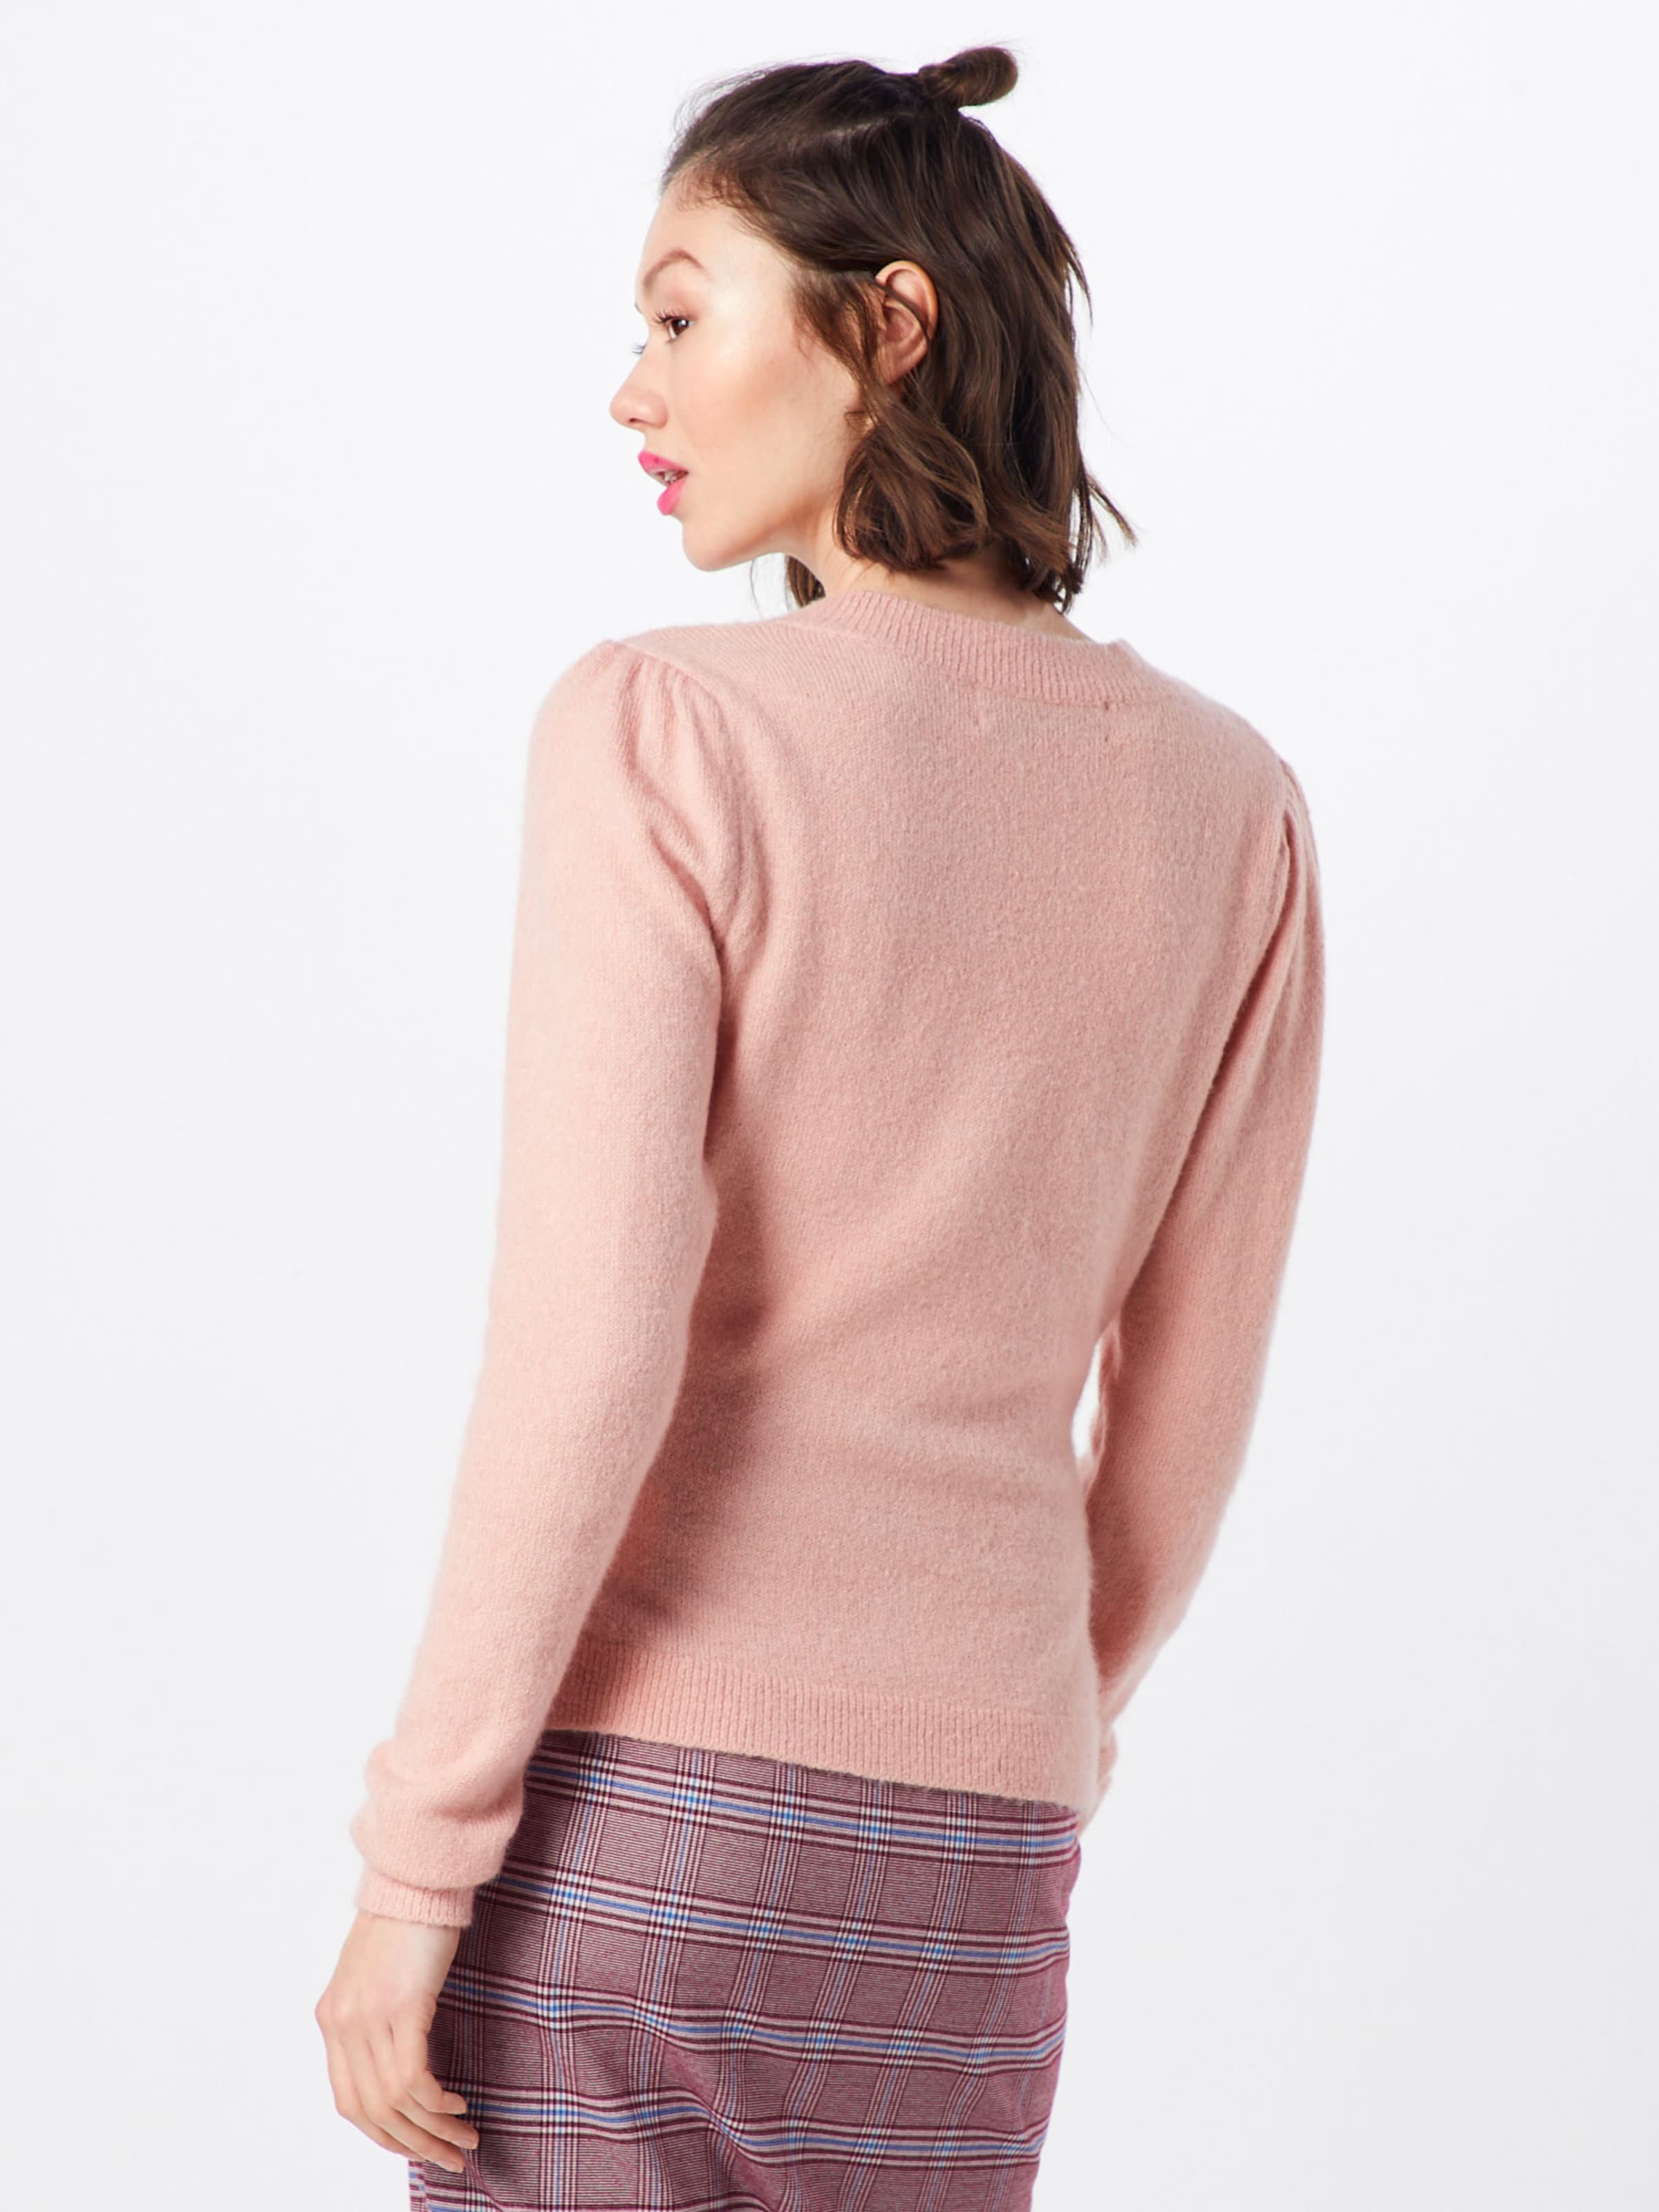 Pink Ivyrevel Ivyrevel In In In Pullover Ivyrevel Pullover Pink Pink Pullover QBostrdxhC